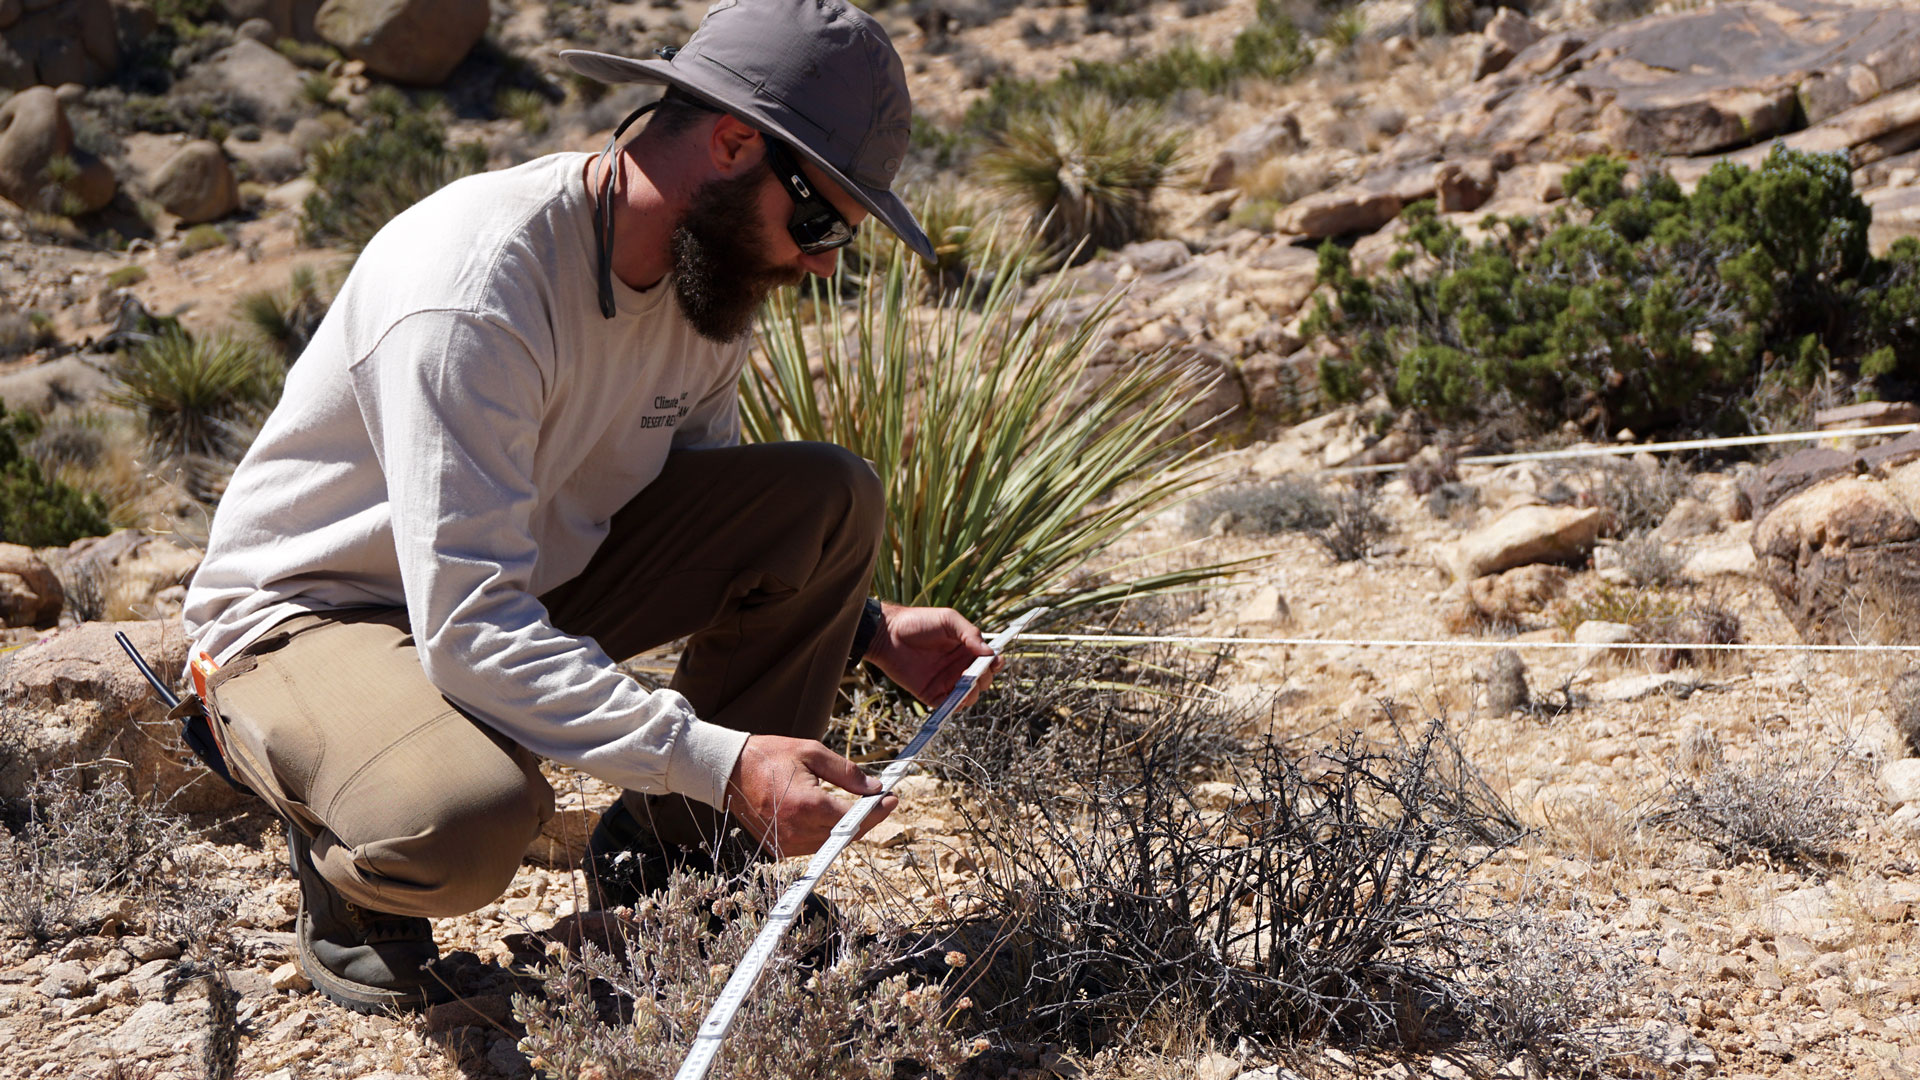 James Heintz of UC Riverside maps out plant life for a yearly ecosystem census.